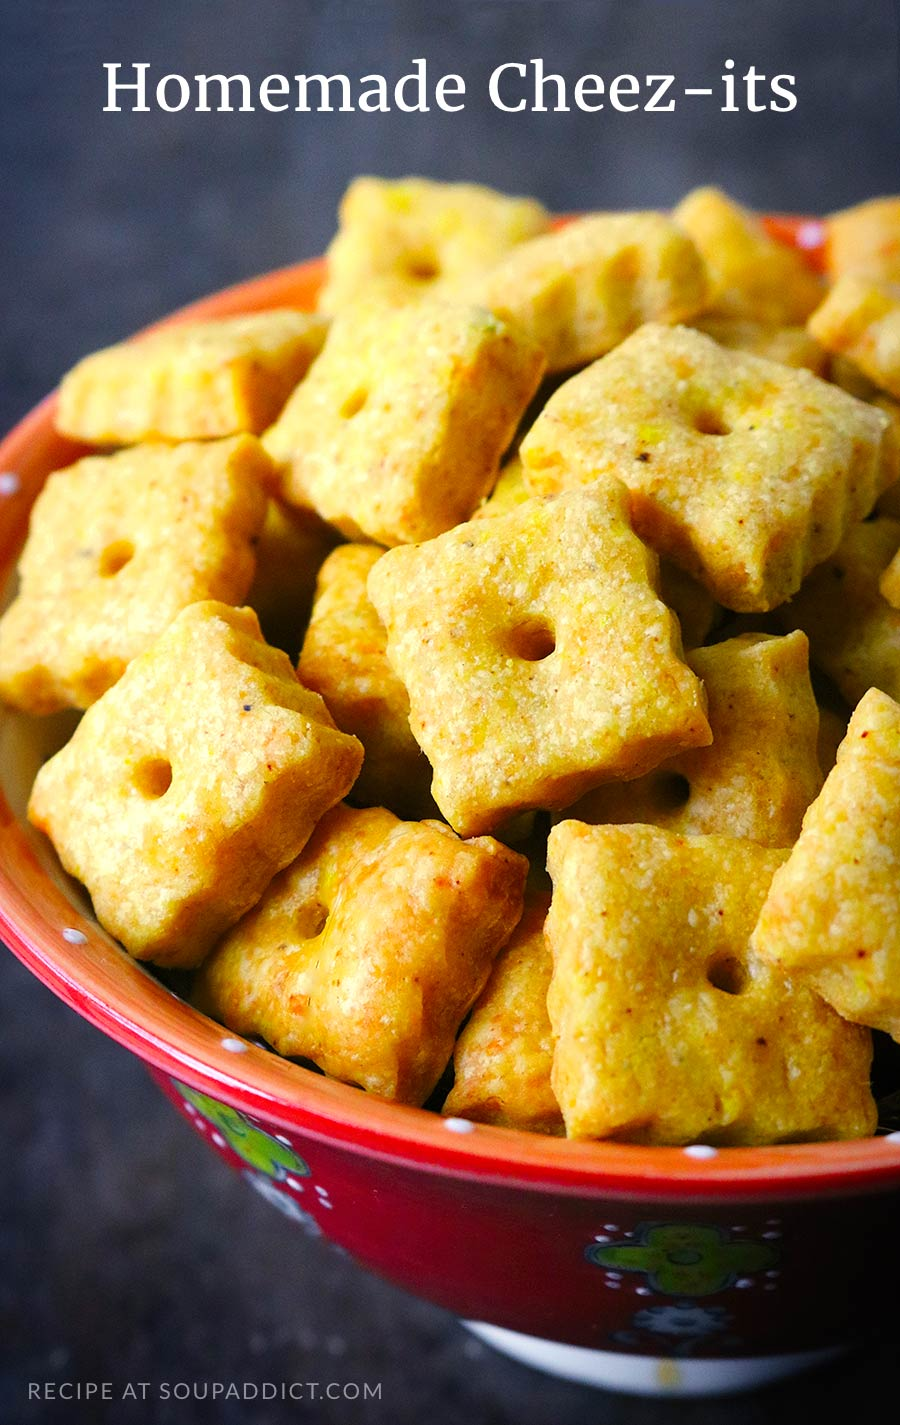 Homemade Cheez-its Crackers from SoupAddict.com